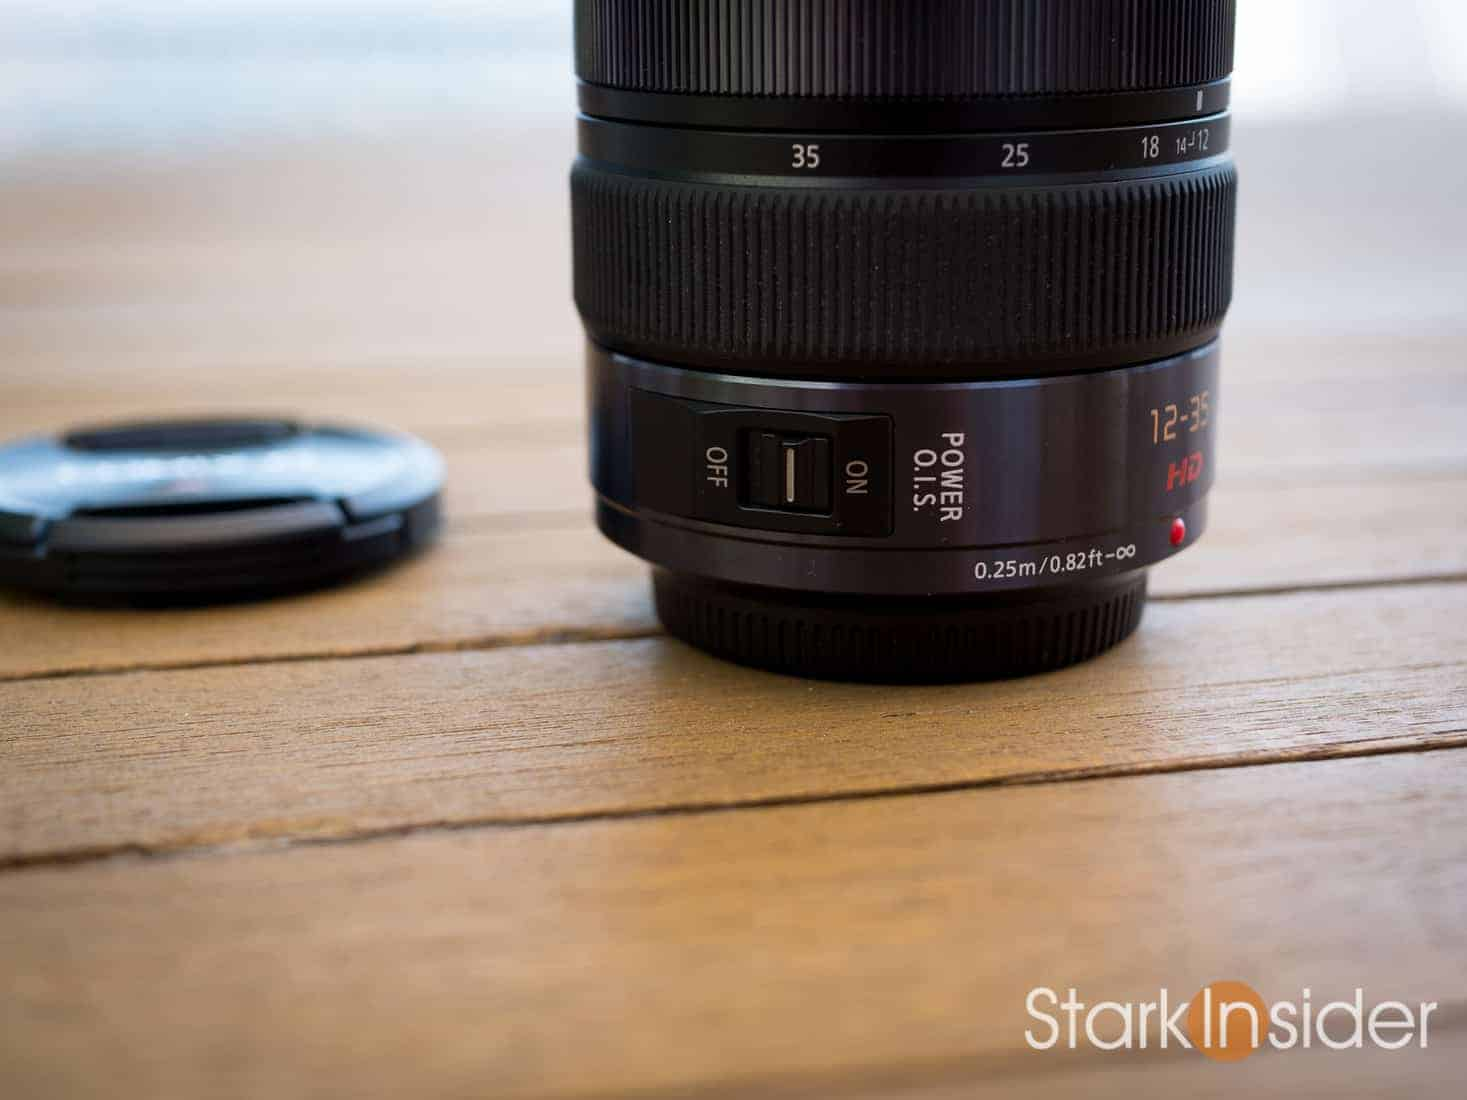 Camera Gear Test How Good Is The Panasonic Lumix G 12 35mm F 28 Gh5 Body Lens Leica 12mm 14 Asph X Vario Review